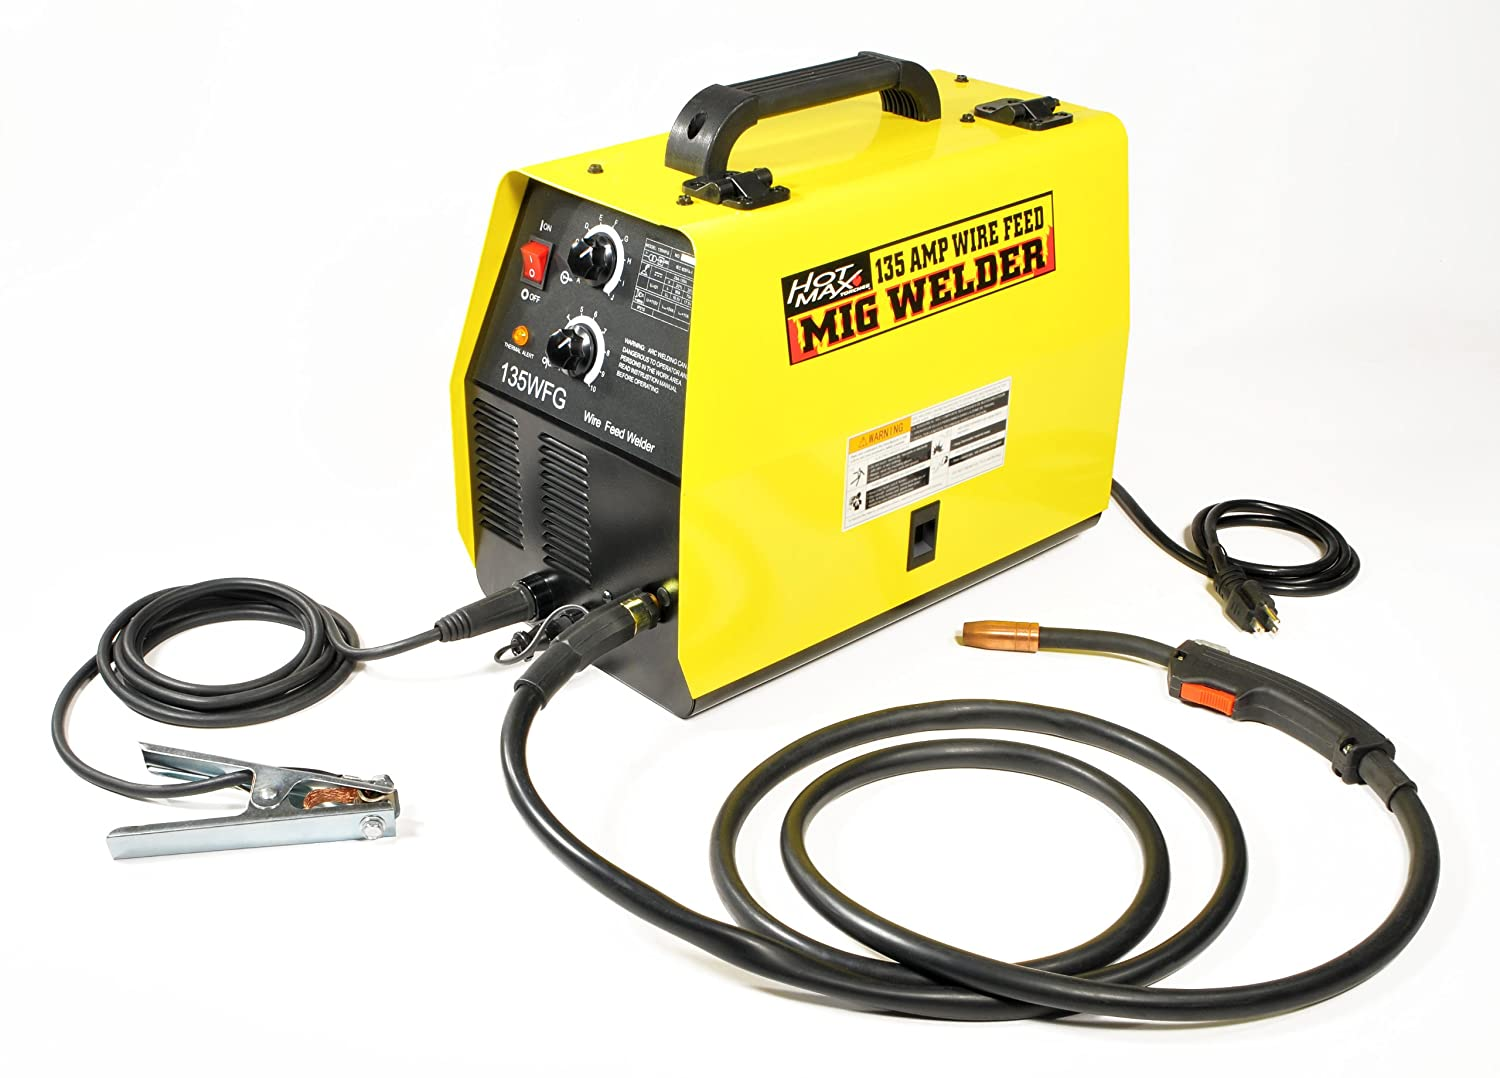 Hot Max 135WFG 135 Amp Gas Ready MIG Welder - Mig Welding Equipment -  Amazon.com